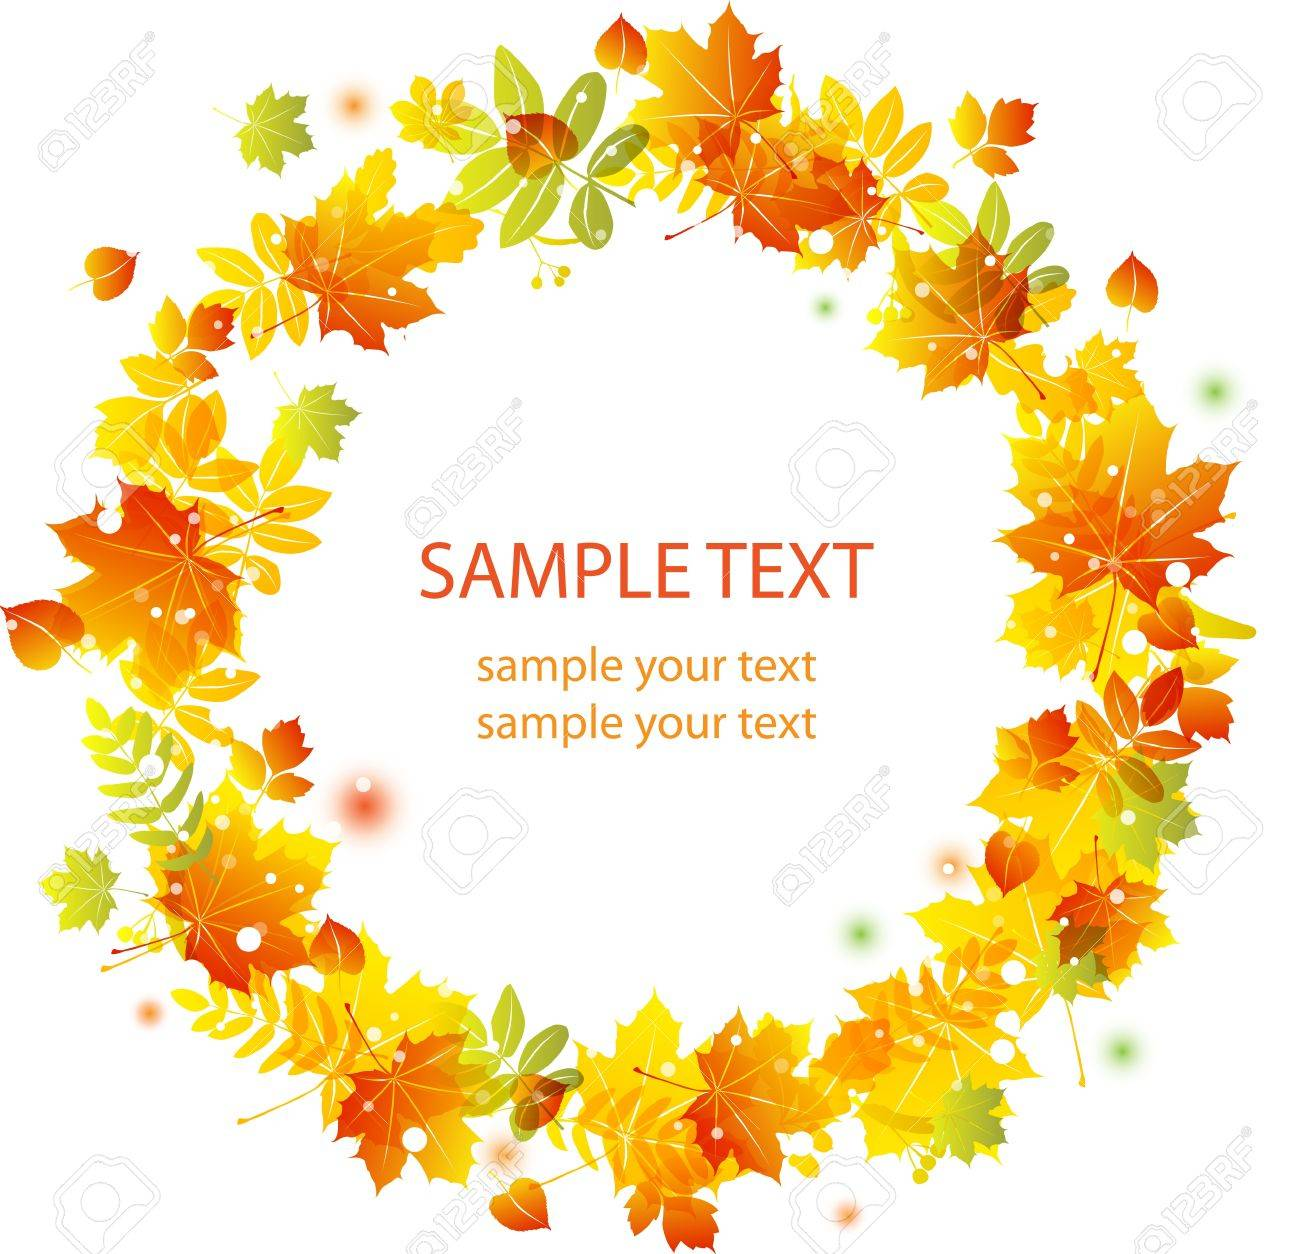 Autumn leaves background. Colorful illustration Stock Vector - 10616416